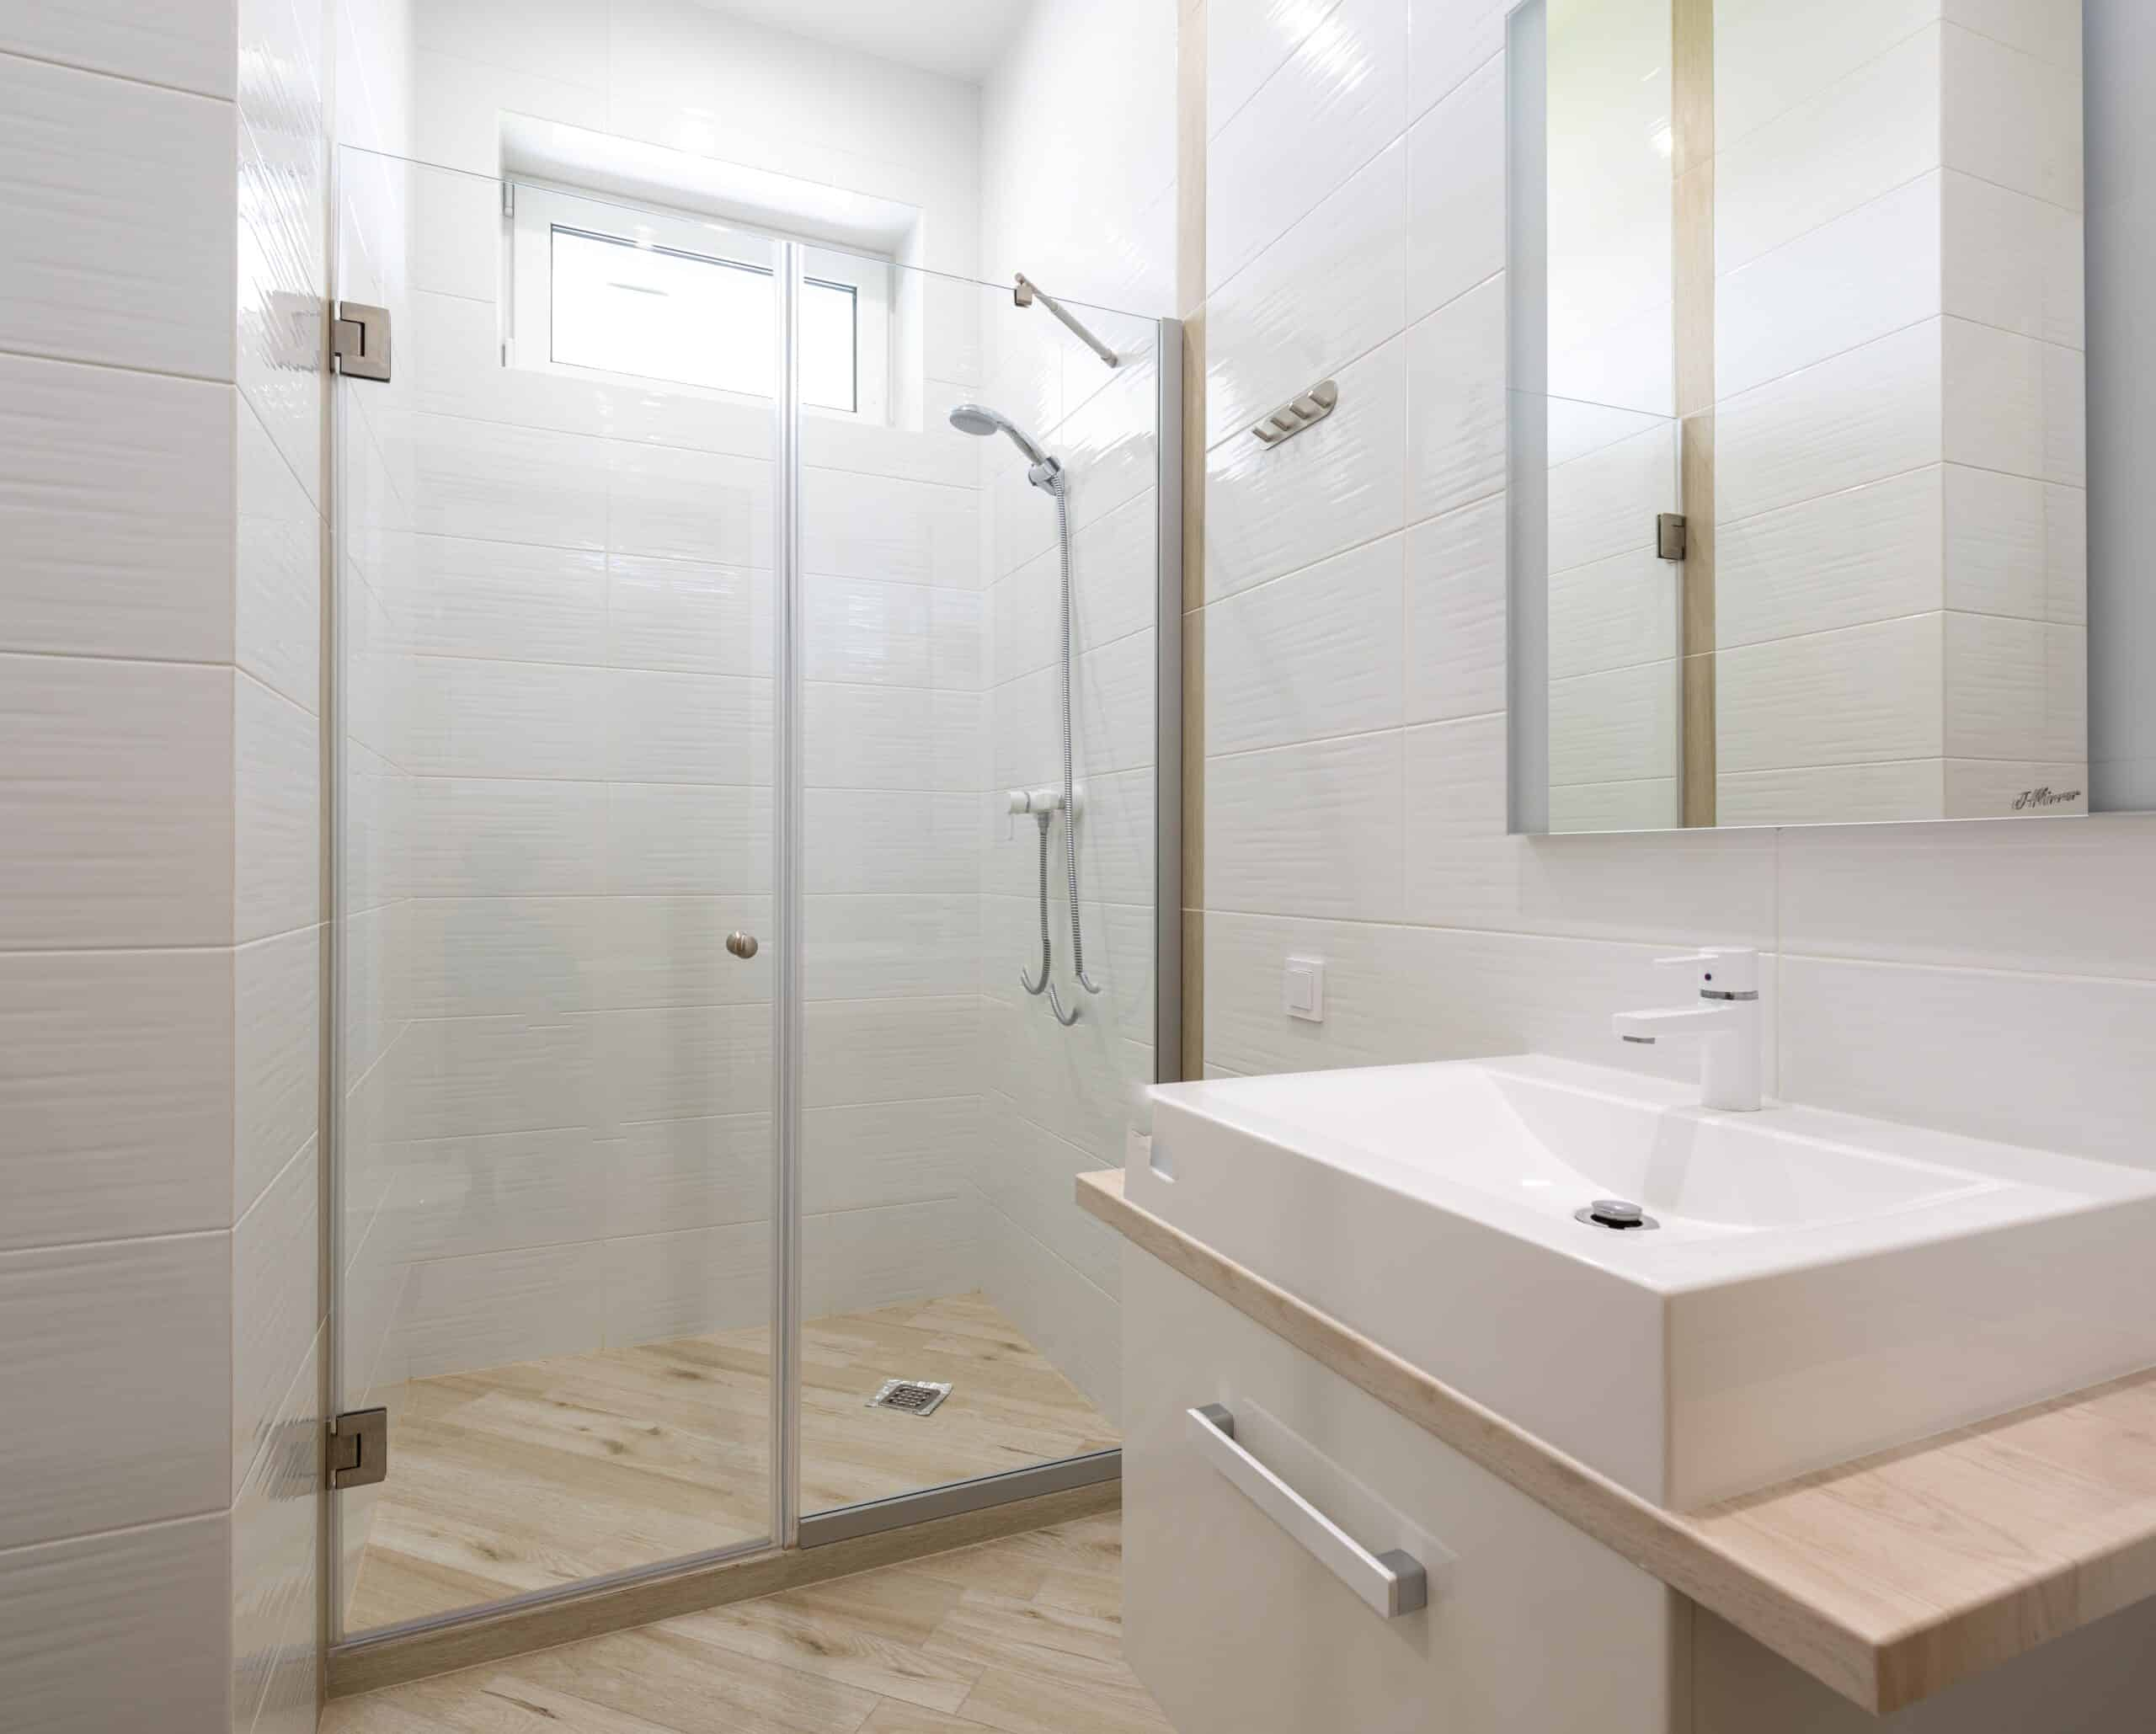 Best Bathroom Exhaust Fans with a Heater and Light